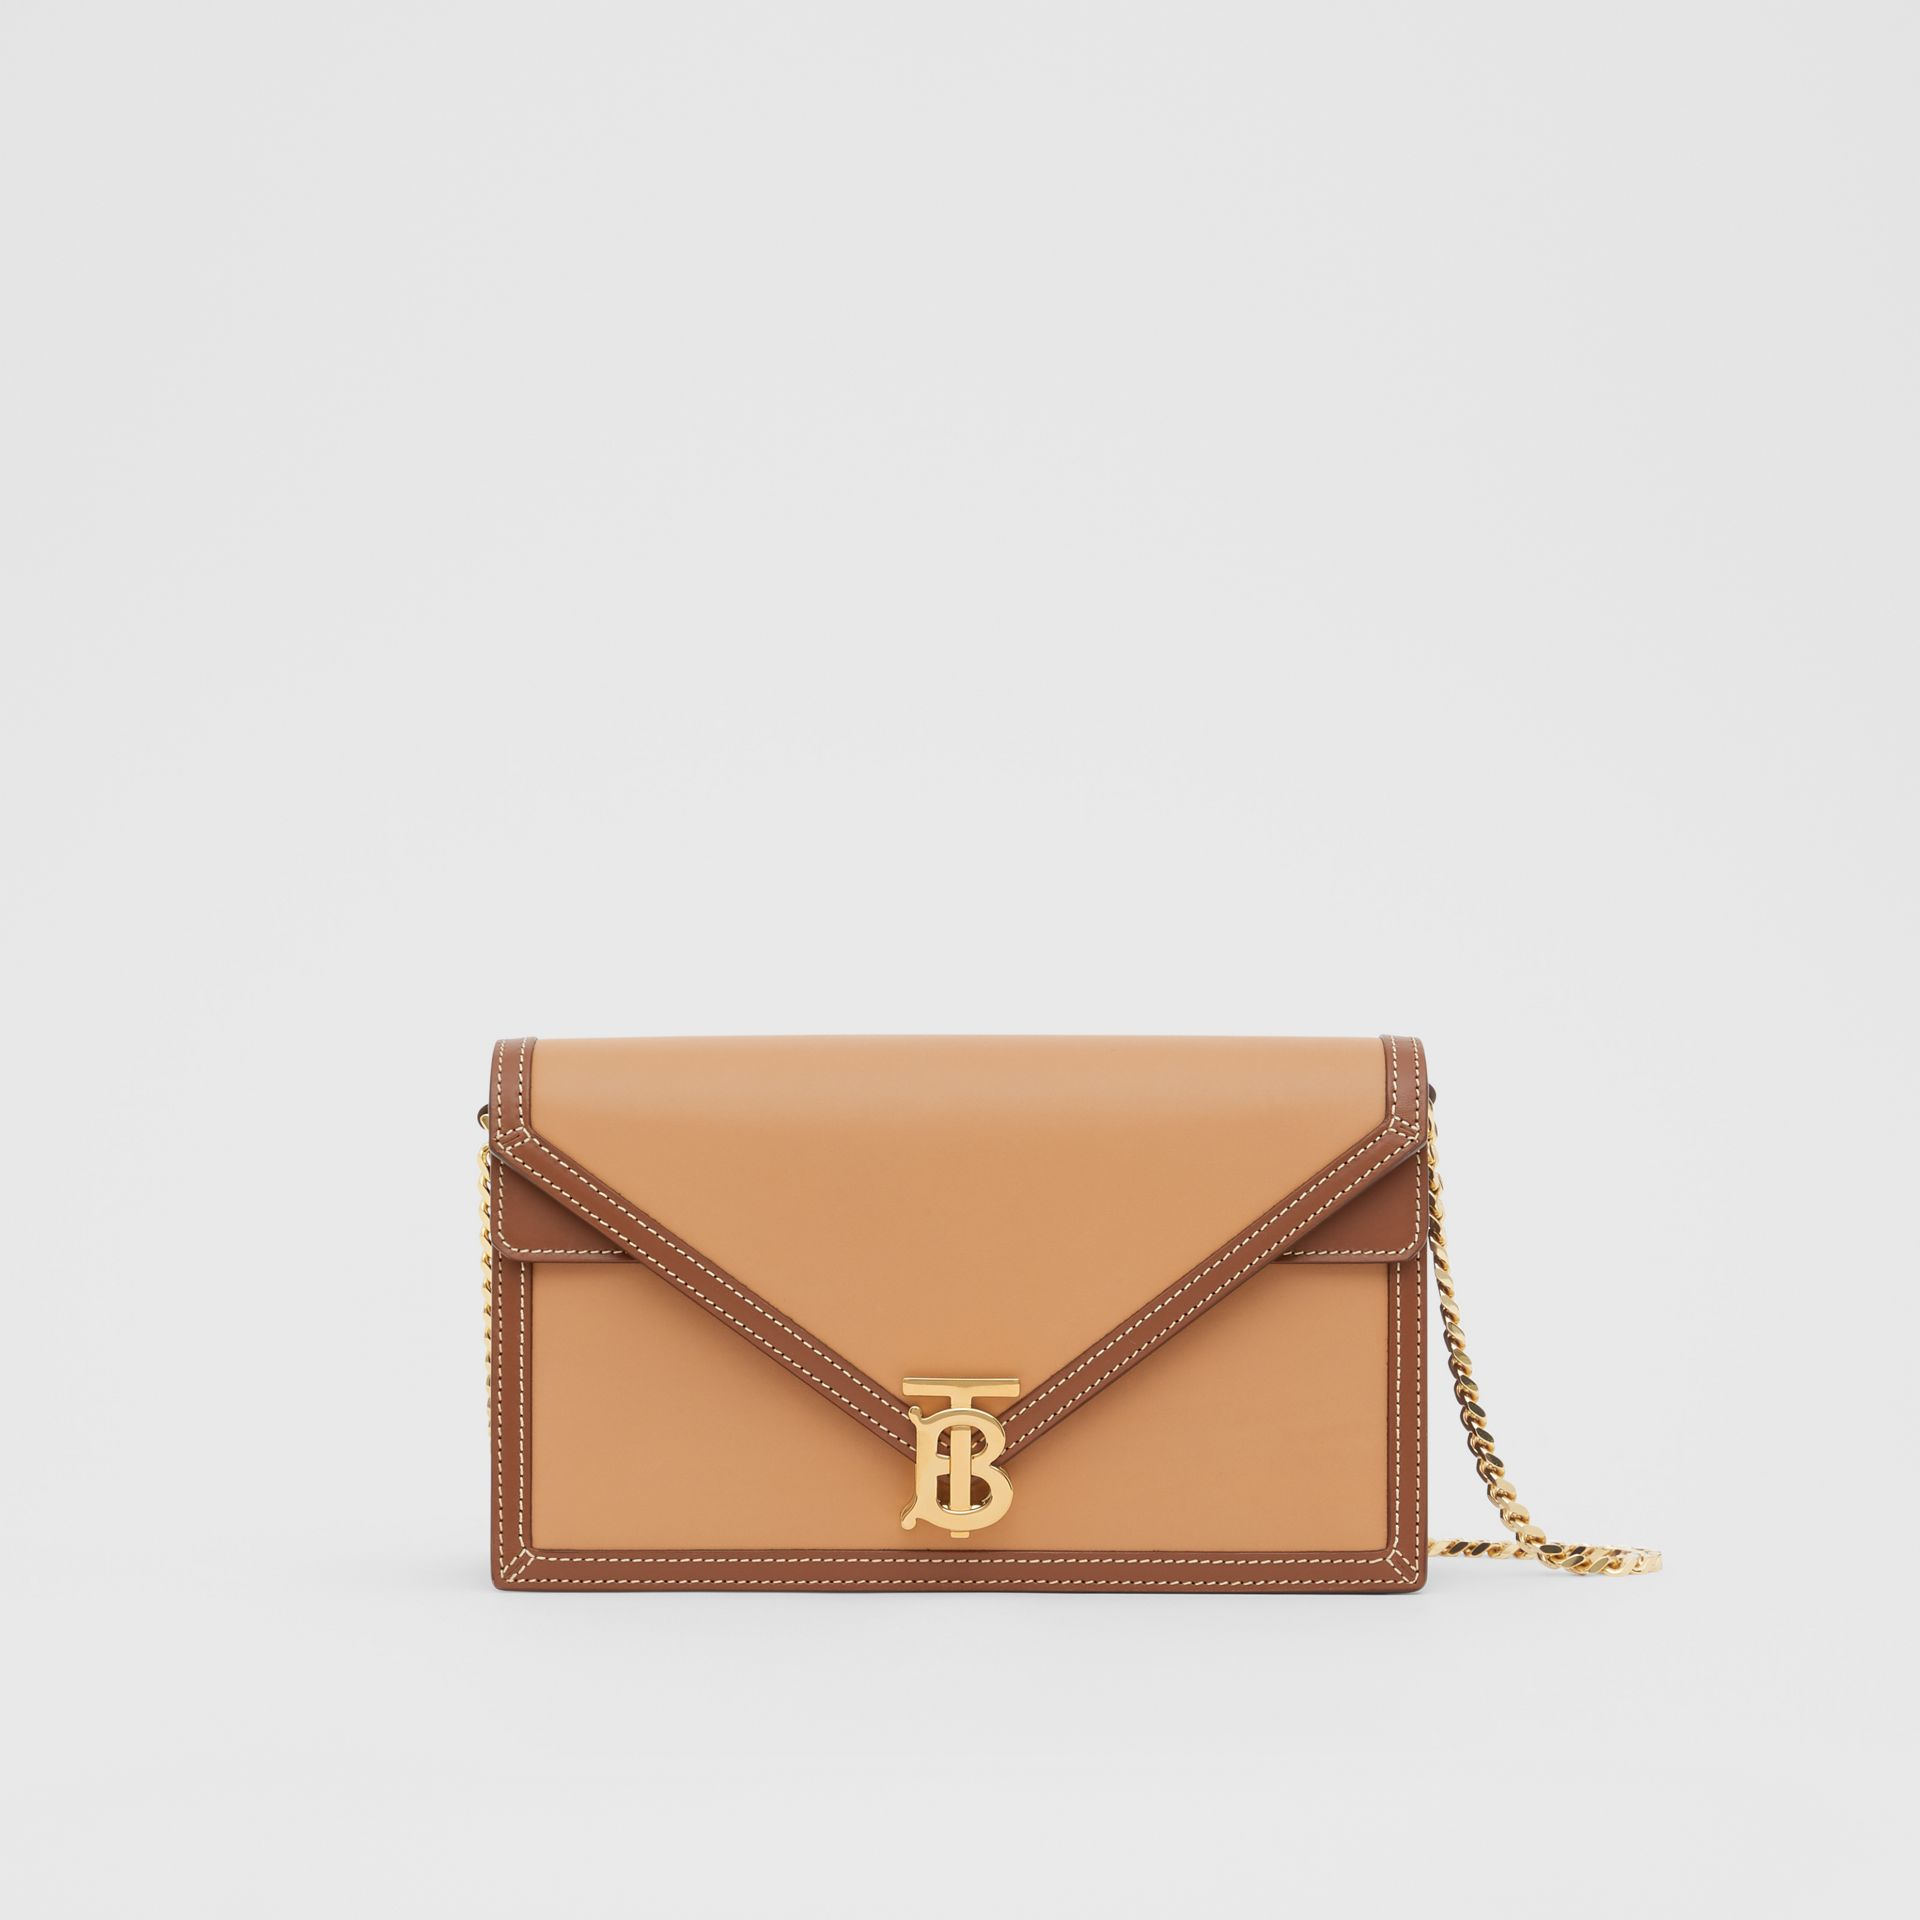 Small Two-tone Leather TB Envelope Clutch in Malt Brown - Women | Burberry - gallery image 0